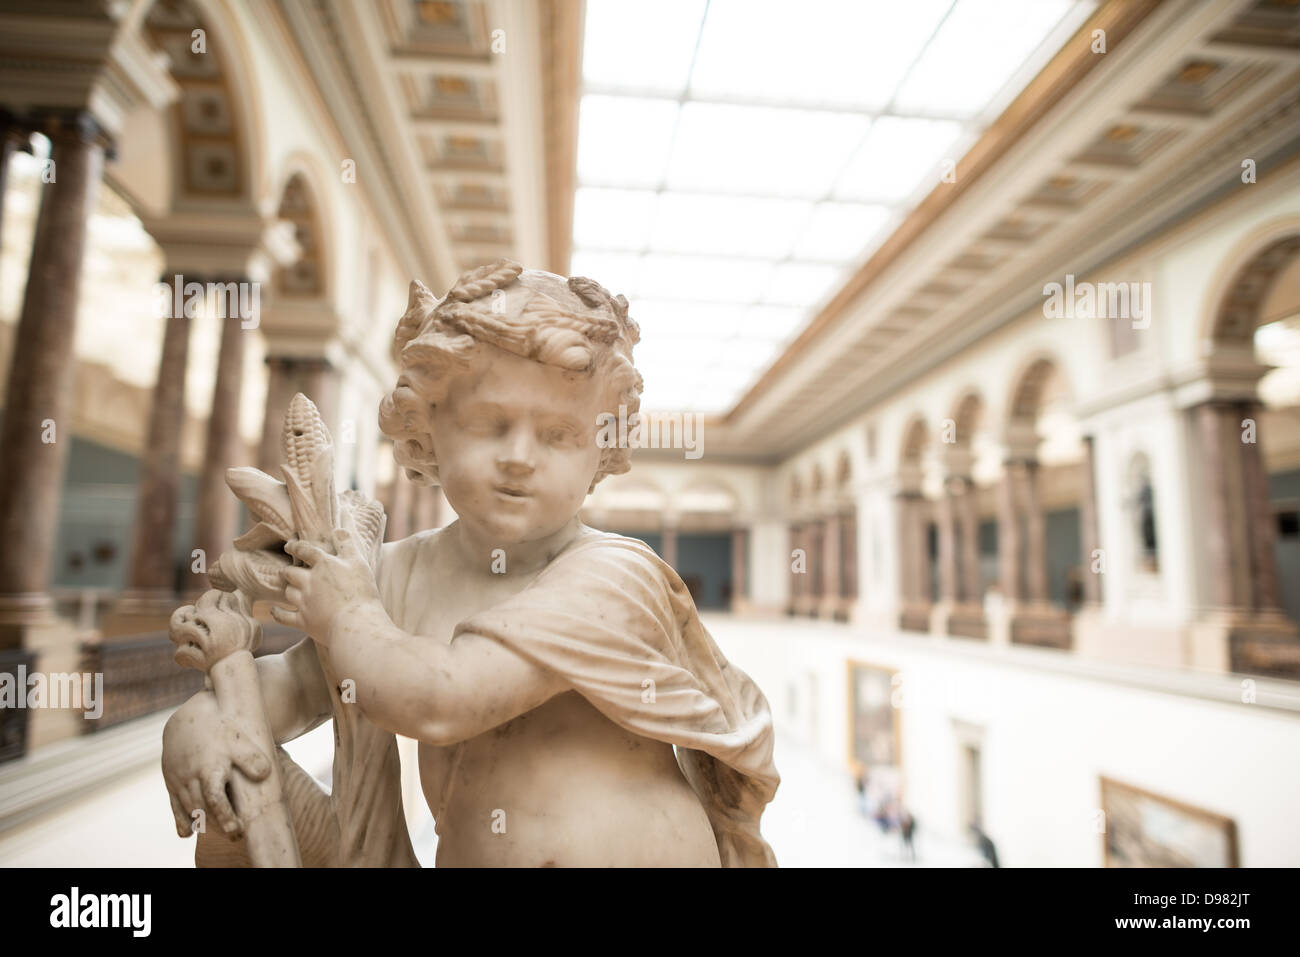 BRUSSELS, Belgium - A 17th century sculpture by Ludovicus Willemsens (1630-1702) titled L'Abondance on display at Stock Photo